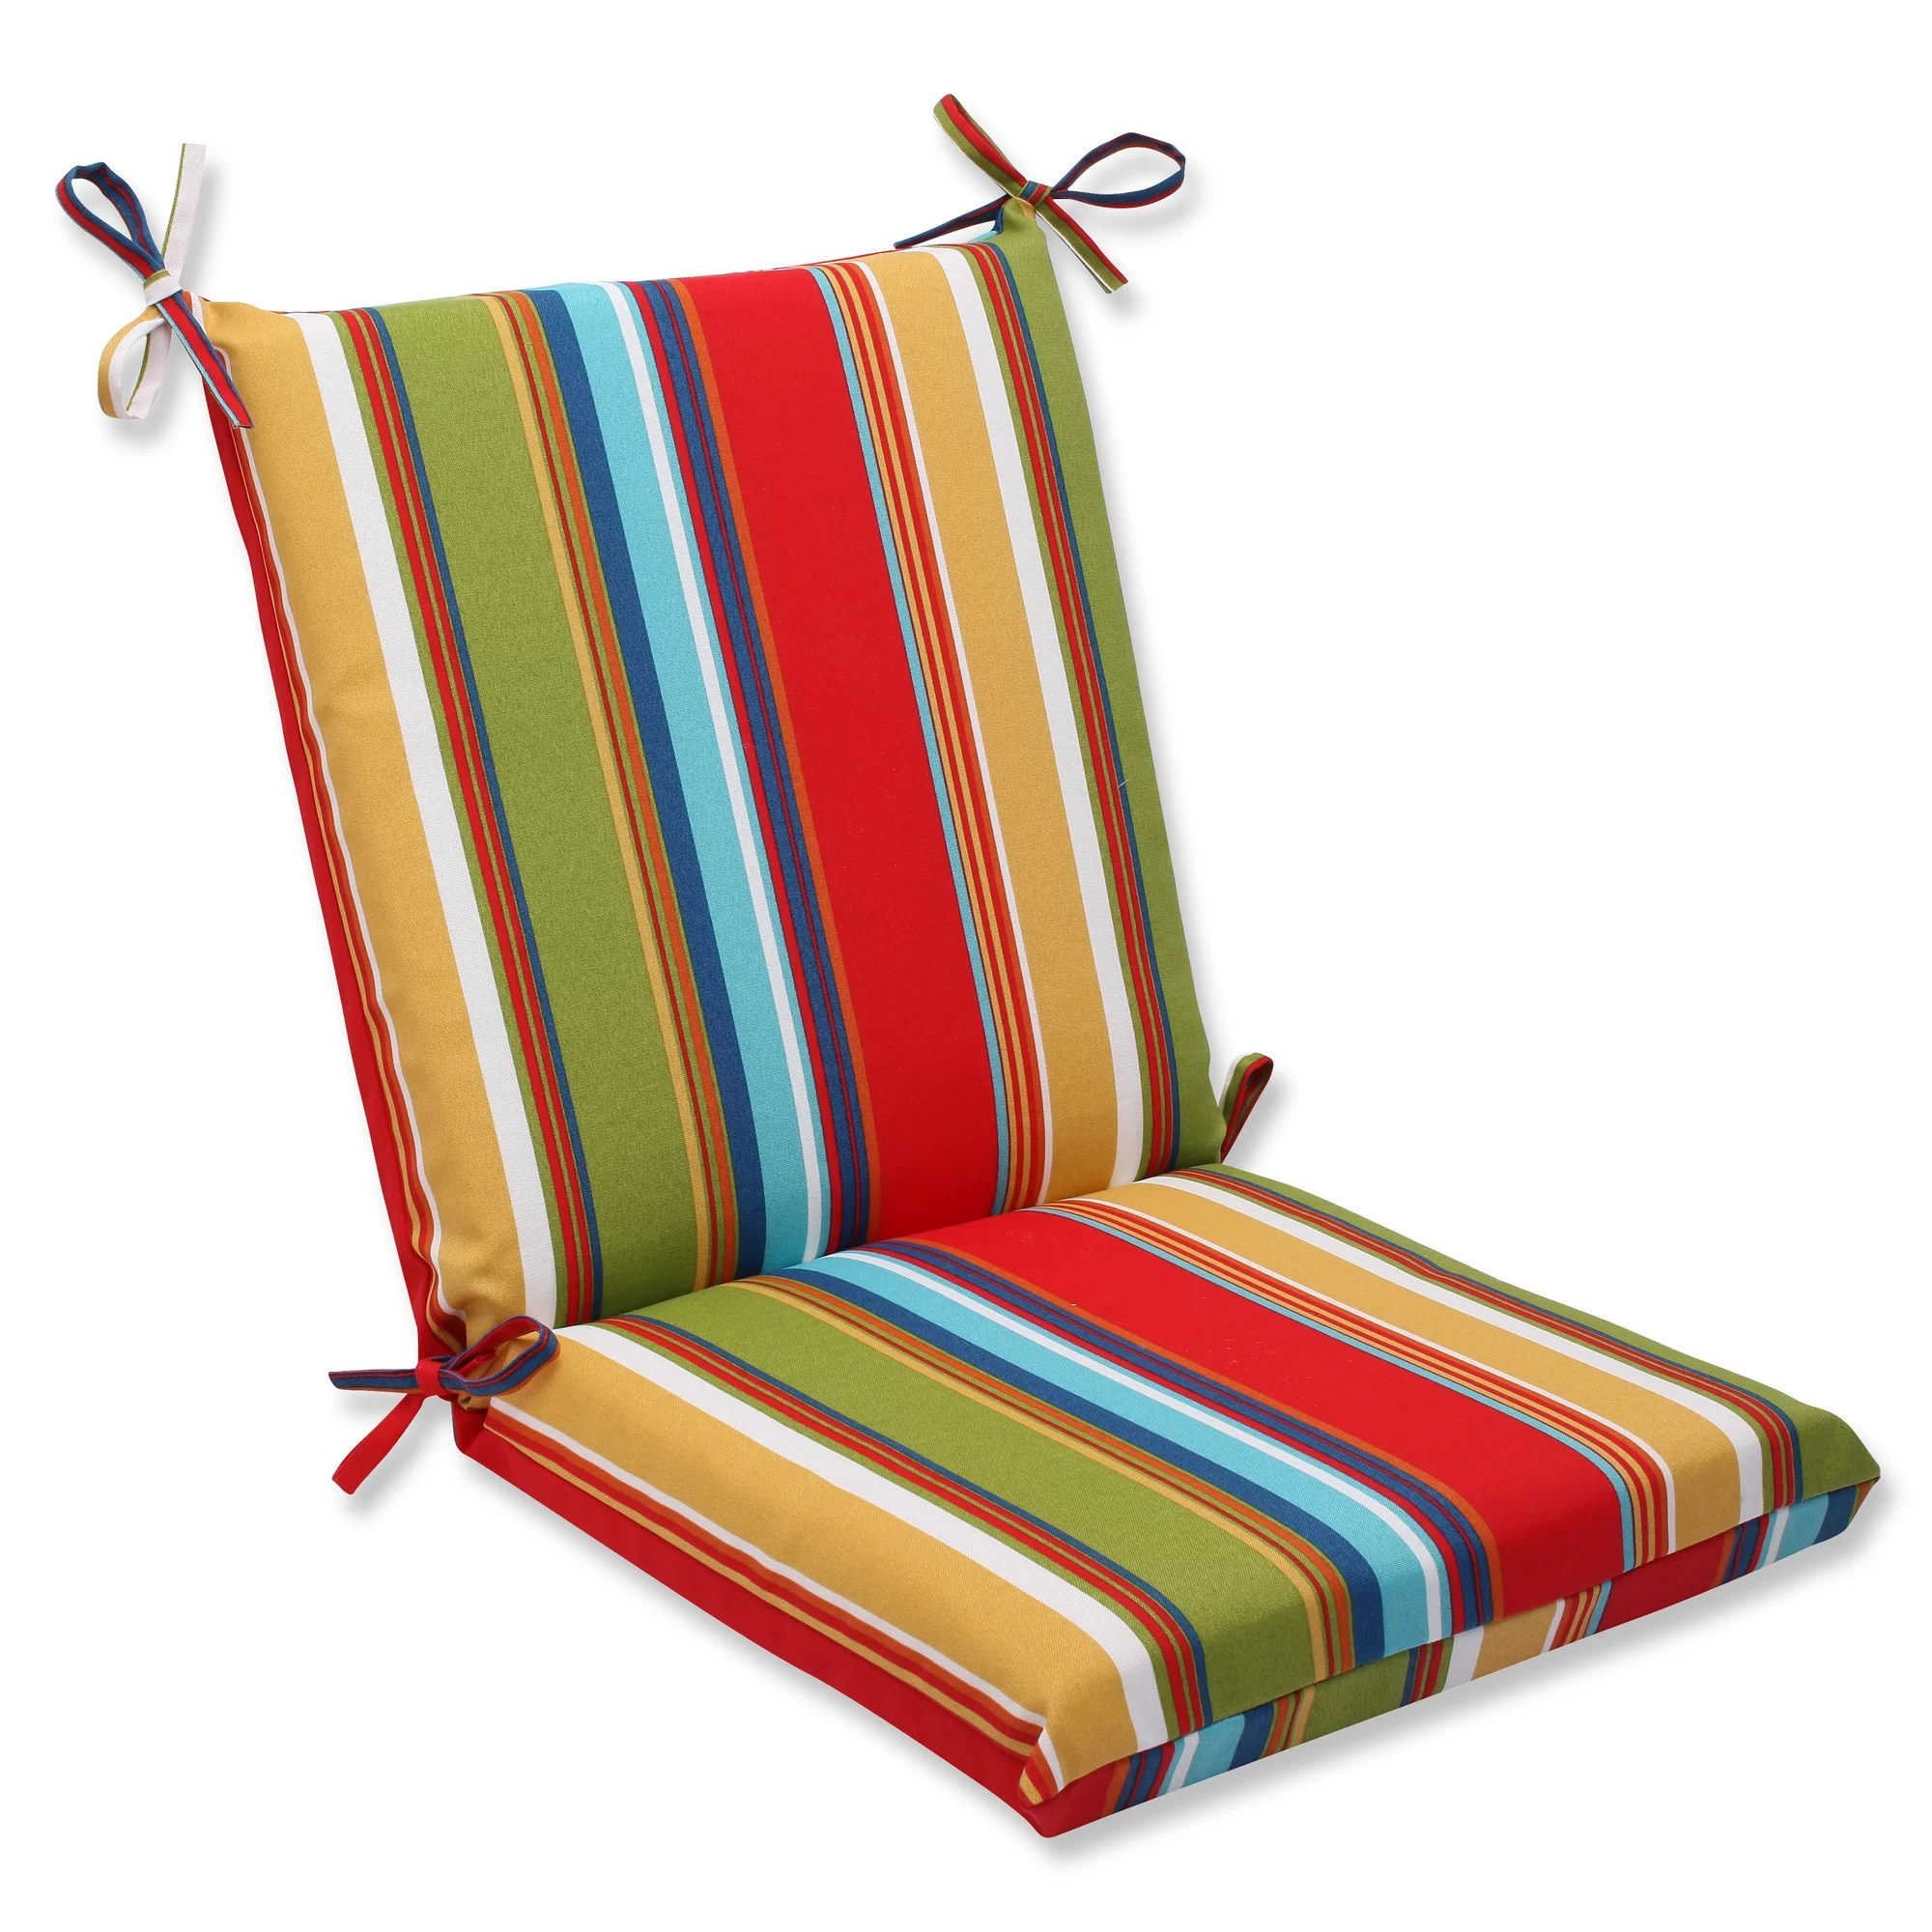 Outdoor Lounge Chair Cushions Pillow Perfect Westport Garden Outdoor Lounge Chair Cushion